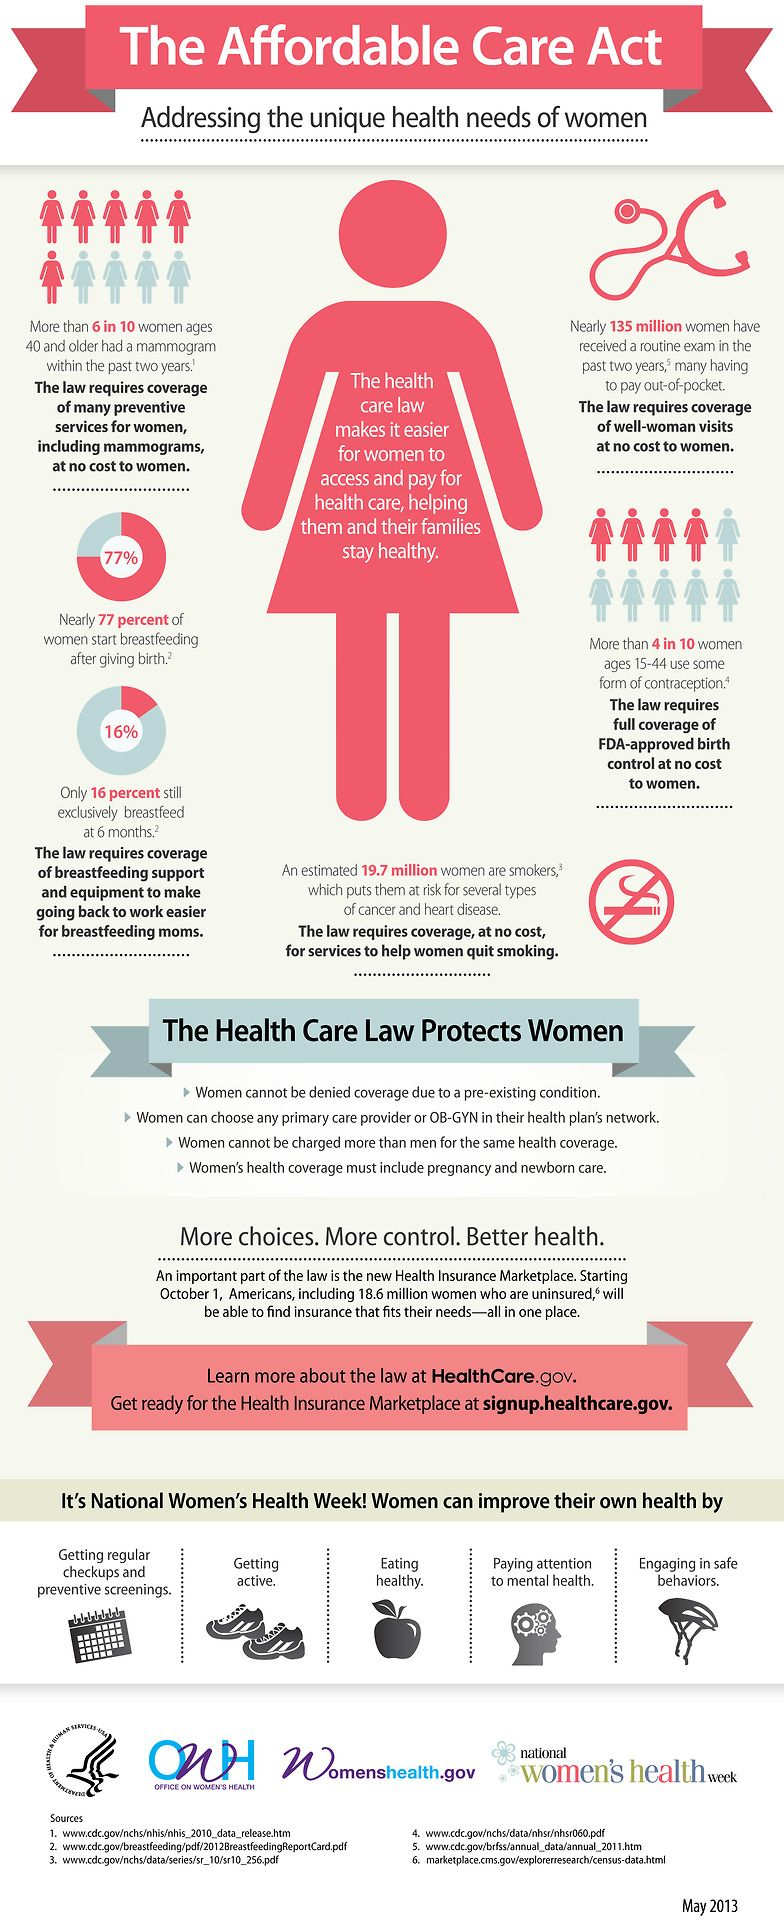 New infographic how is the Affordable Care Act addressing